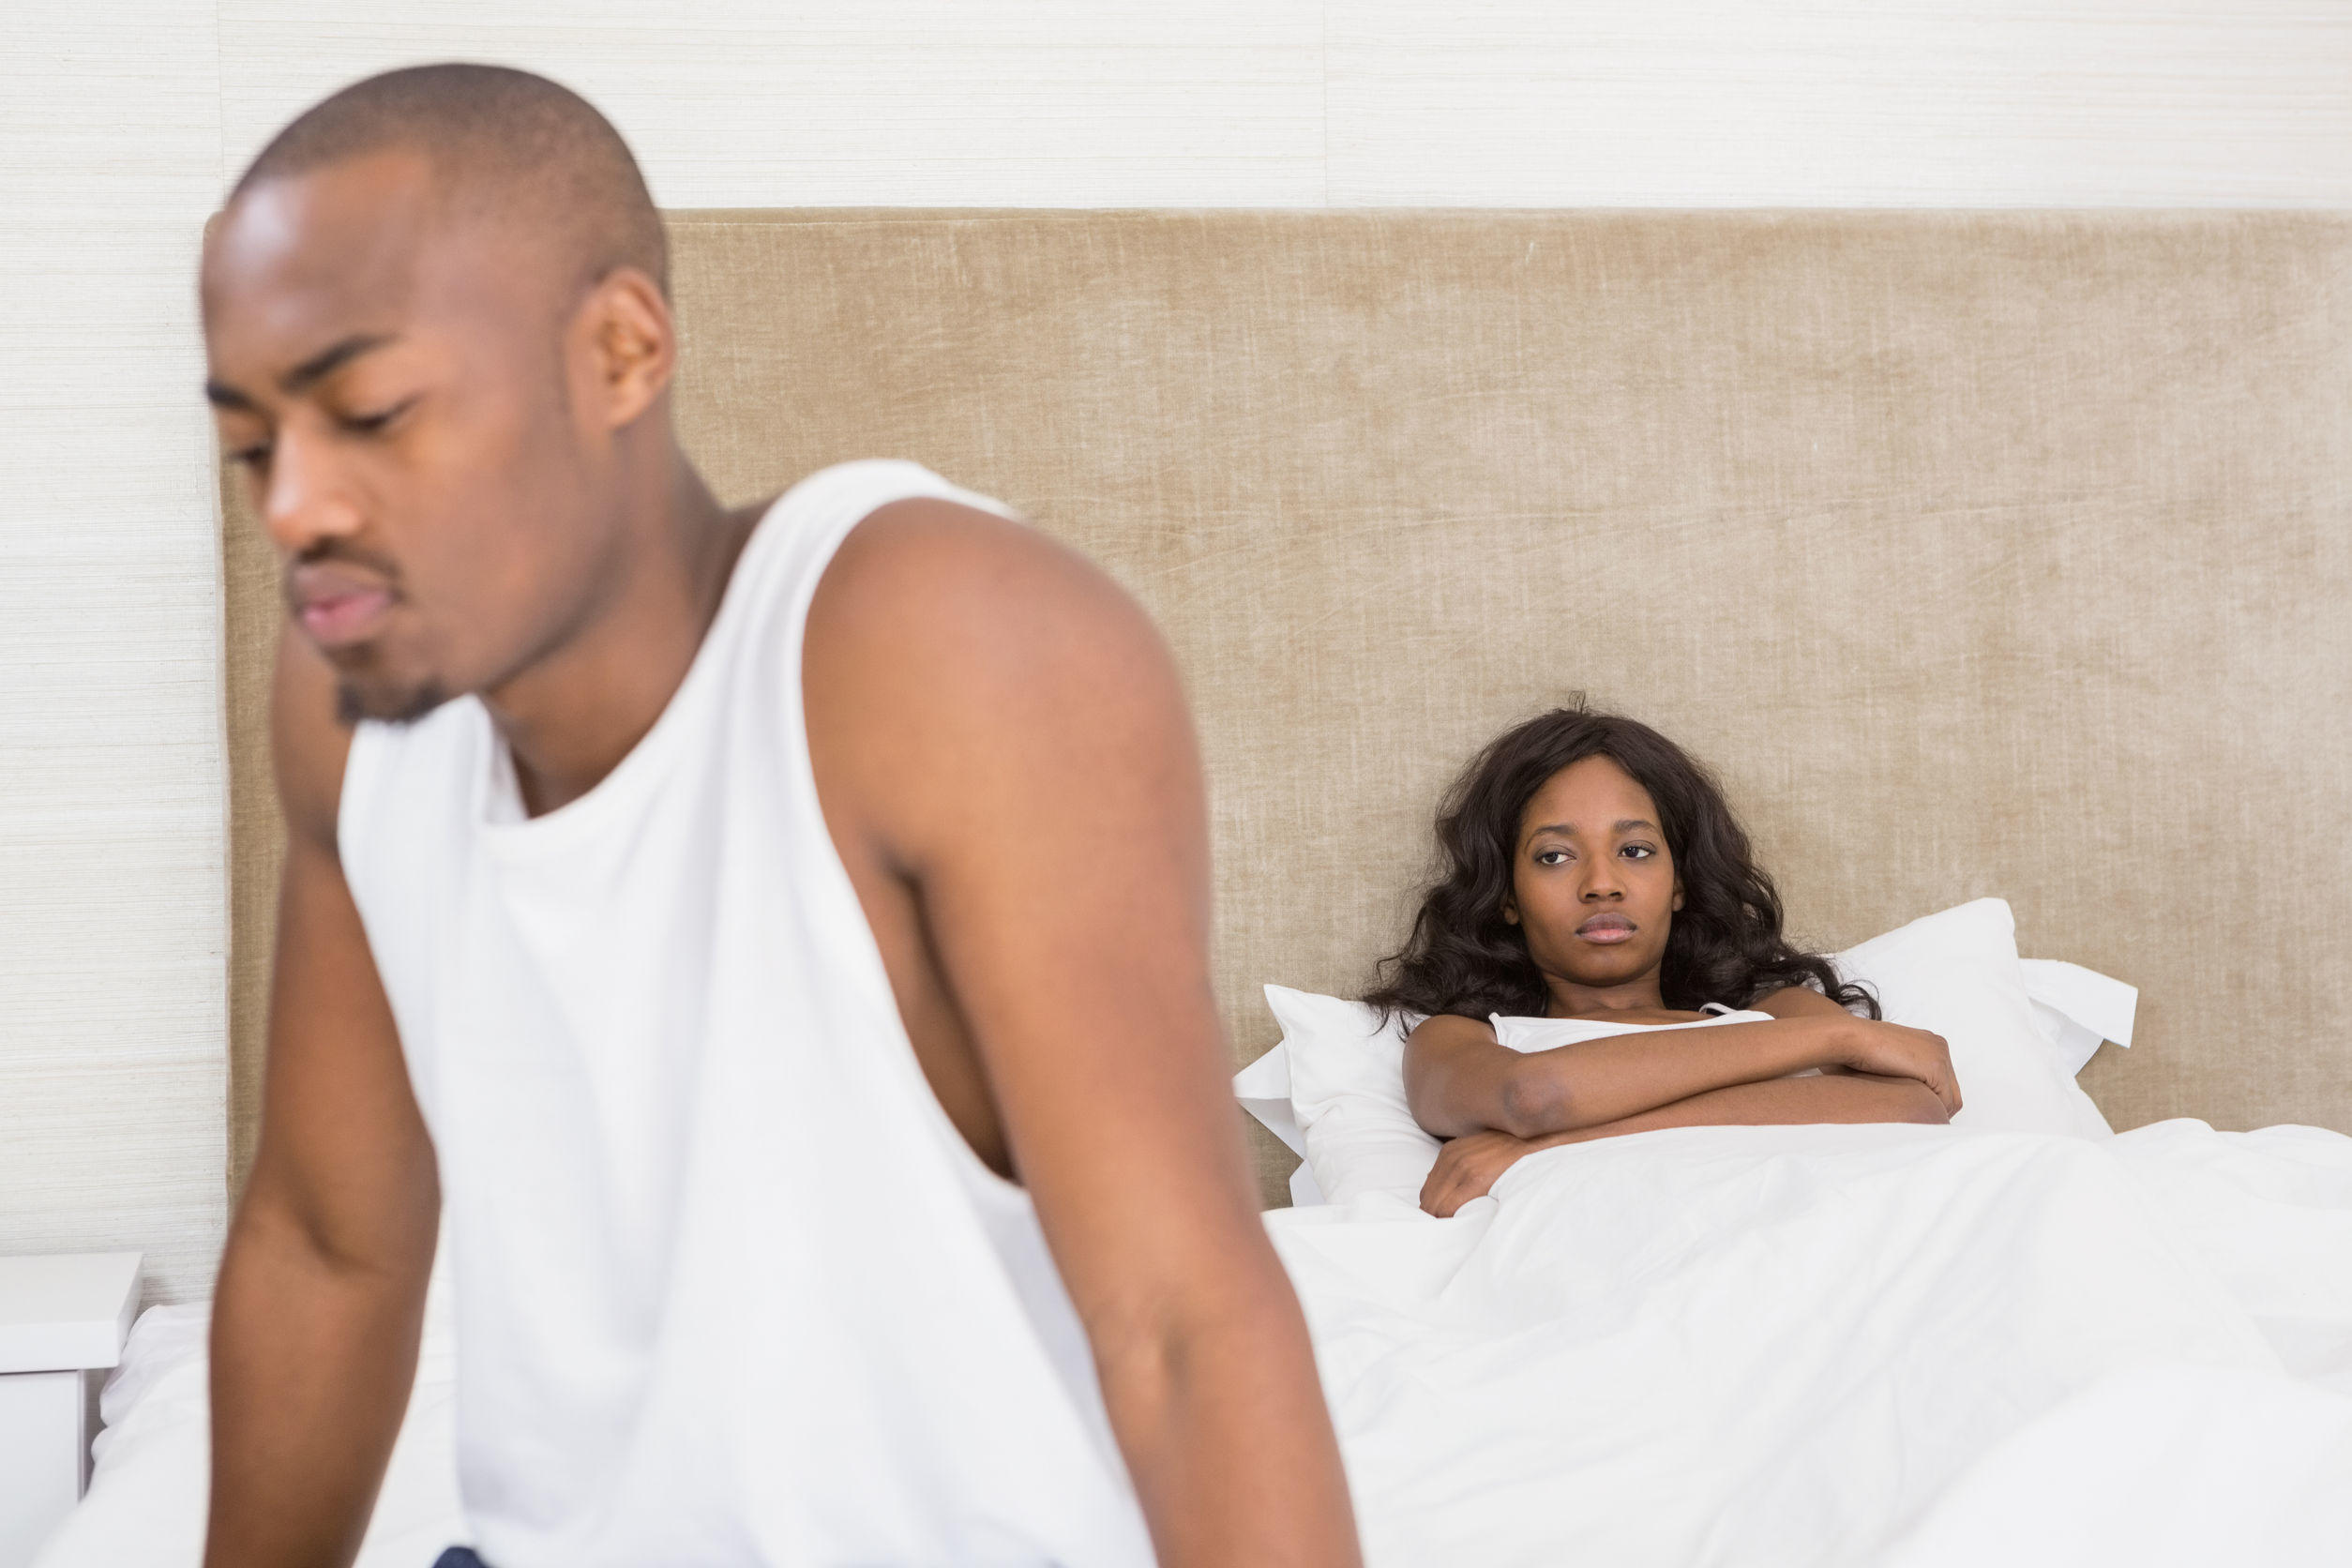 54927629 – young man sitting on bed after an argument in the bedroom